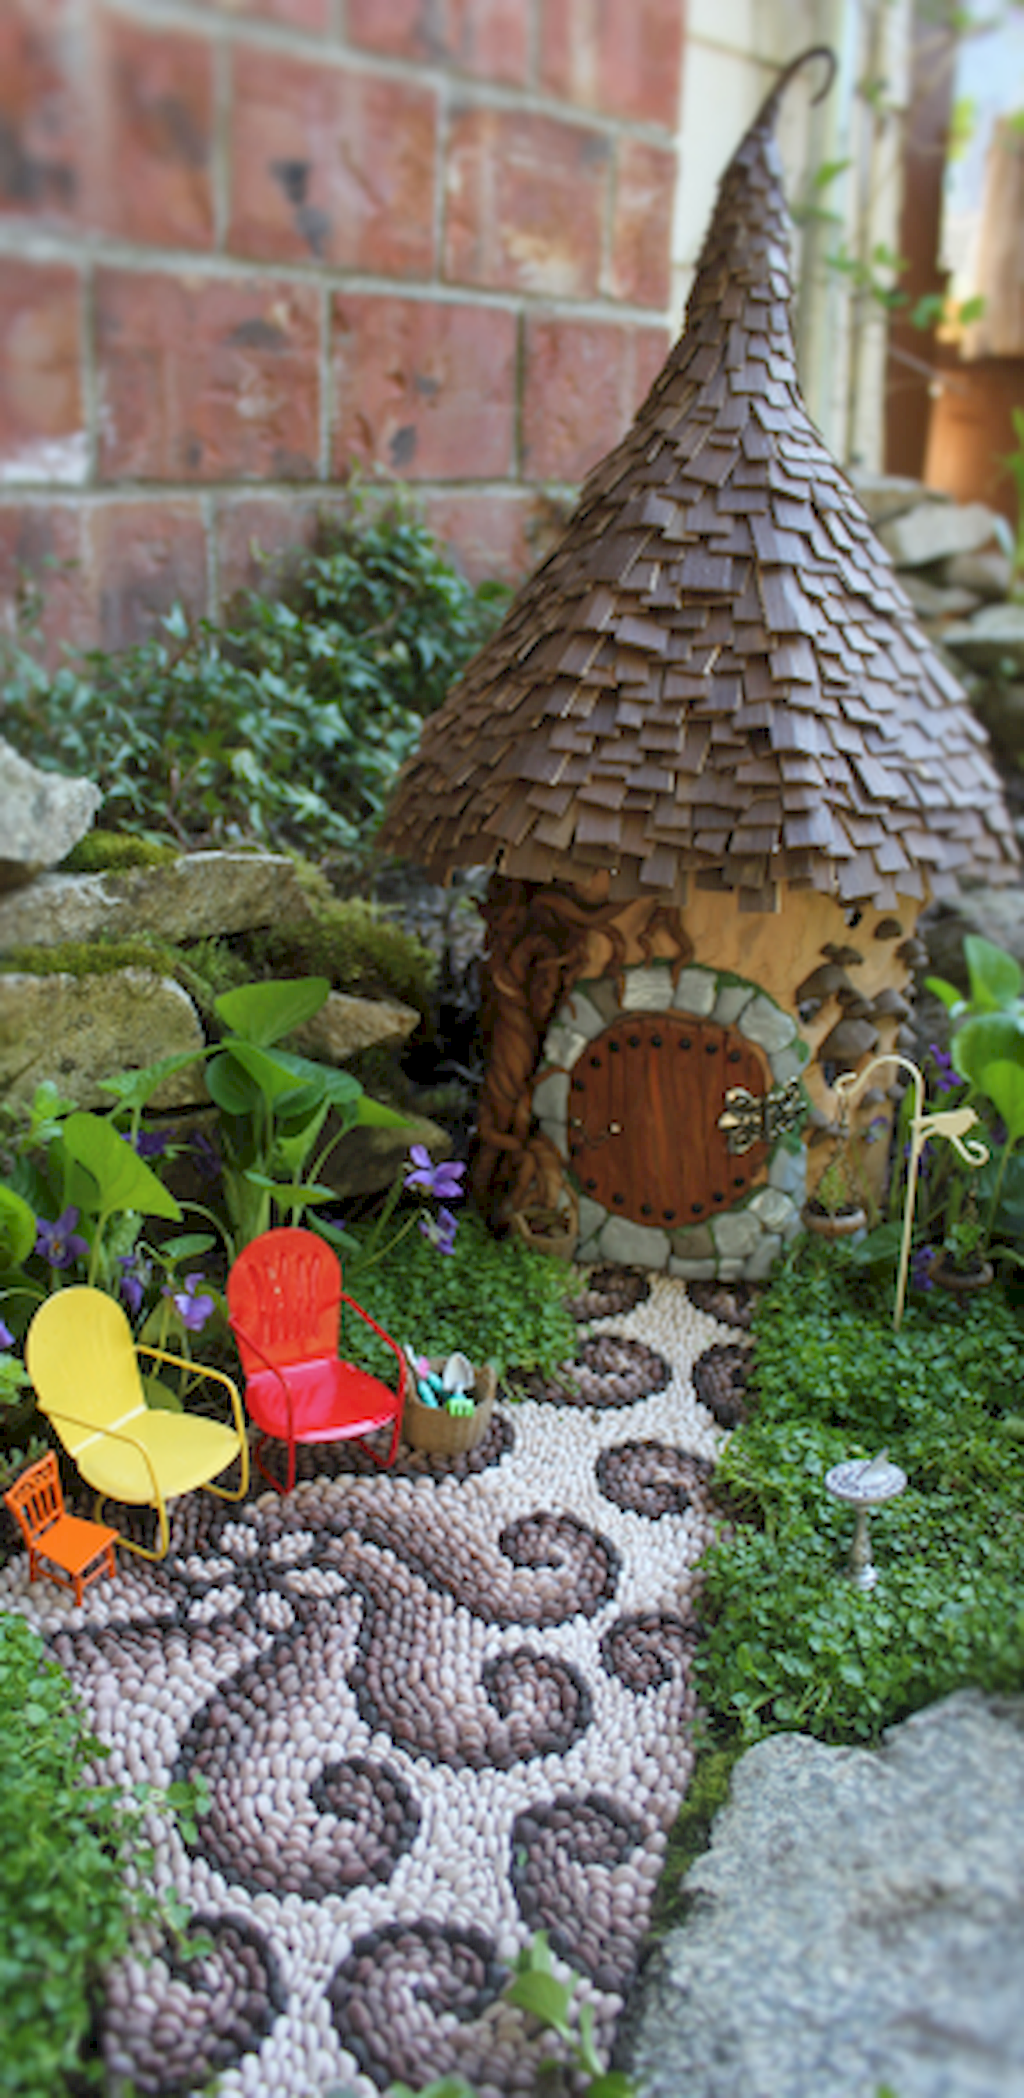 120 amazing backyard fairy garden ideas on a budget | garden ideas